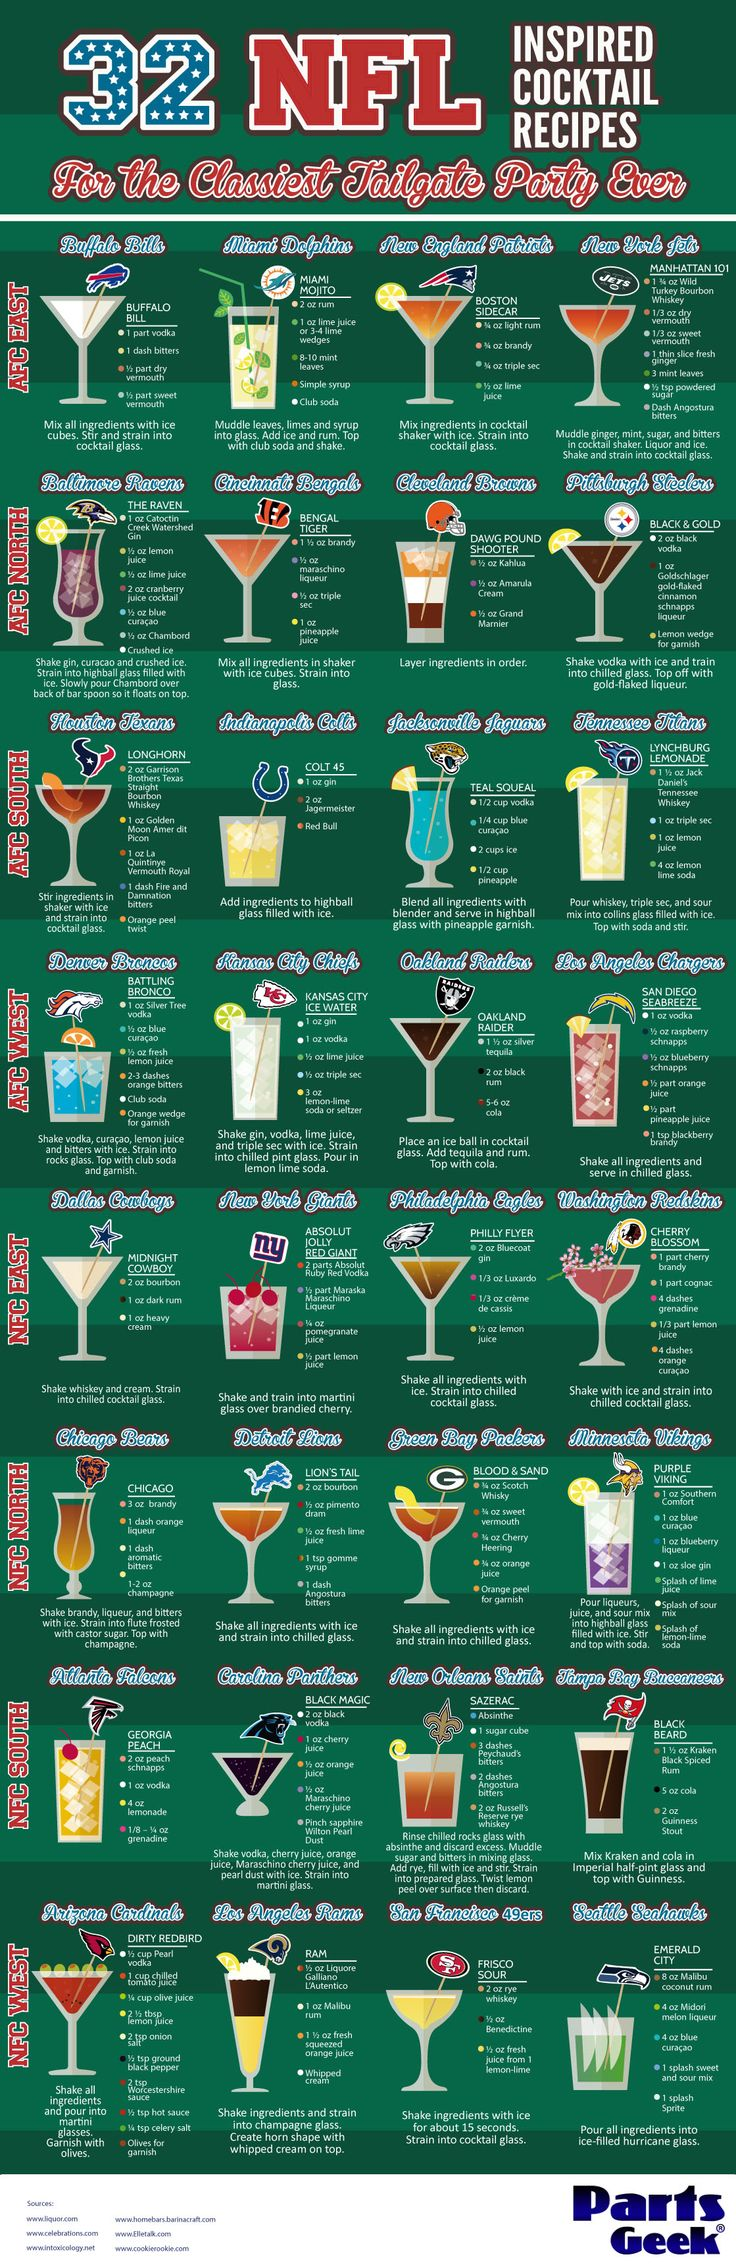 32 NFL Inspired Cocktail Recipes